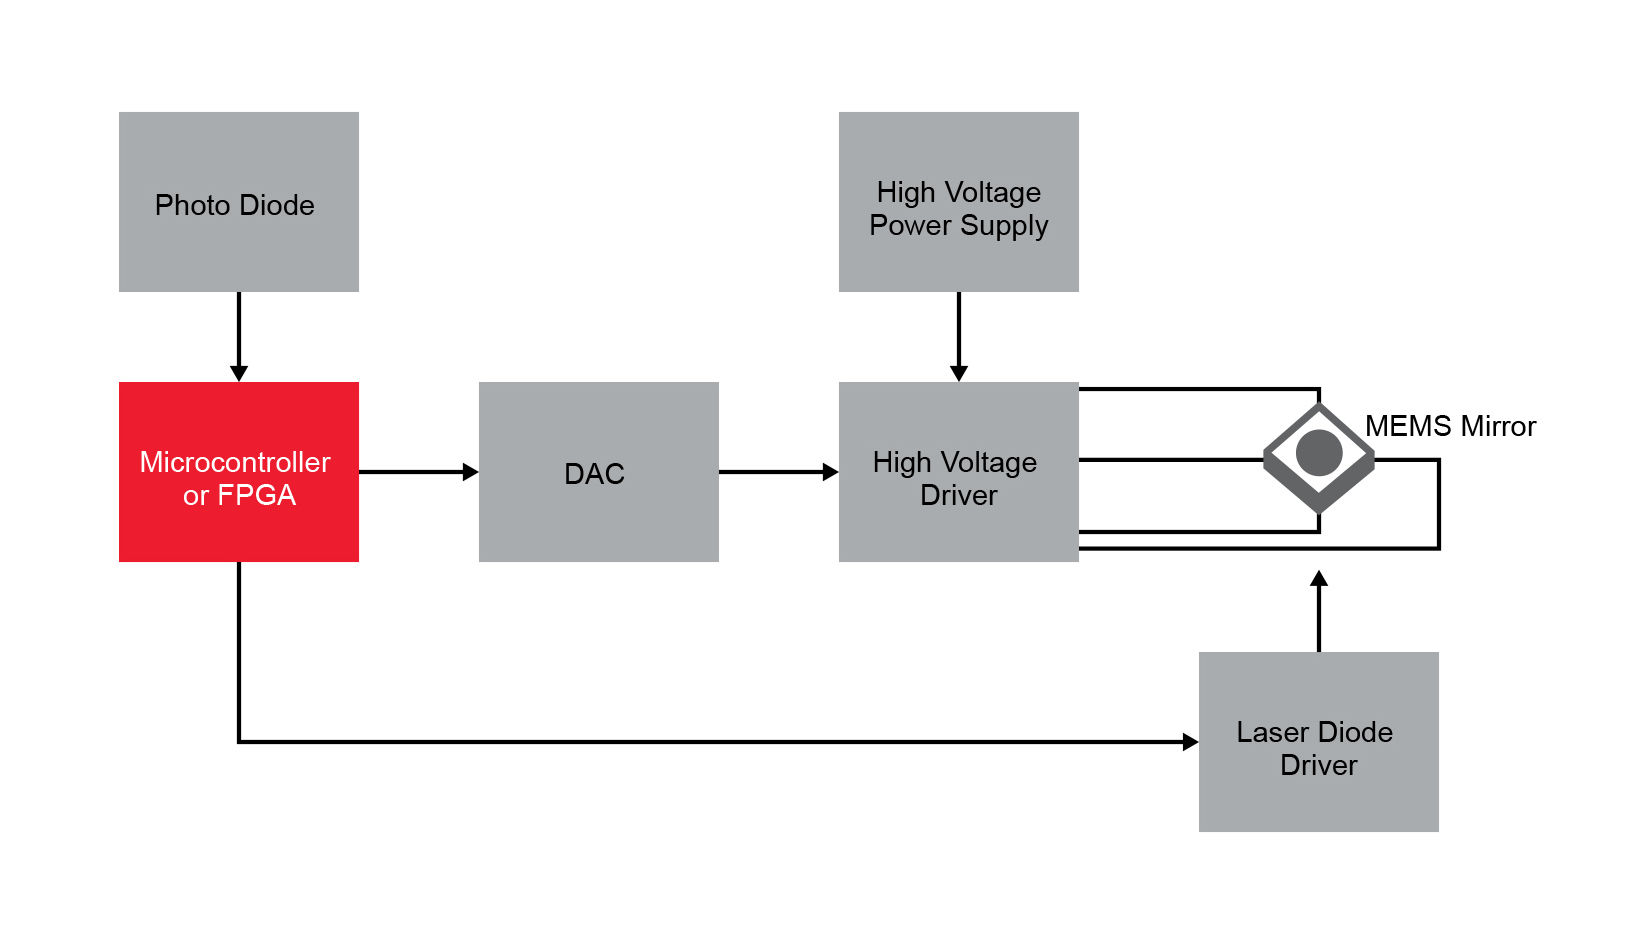 Mems Mirror Steering Laser Beam Lidar Microchip Diode Driver Circuit Current Controlled Electronic Diagram